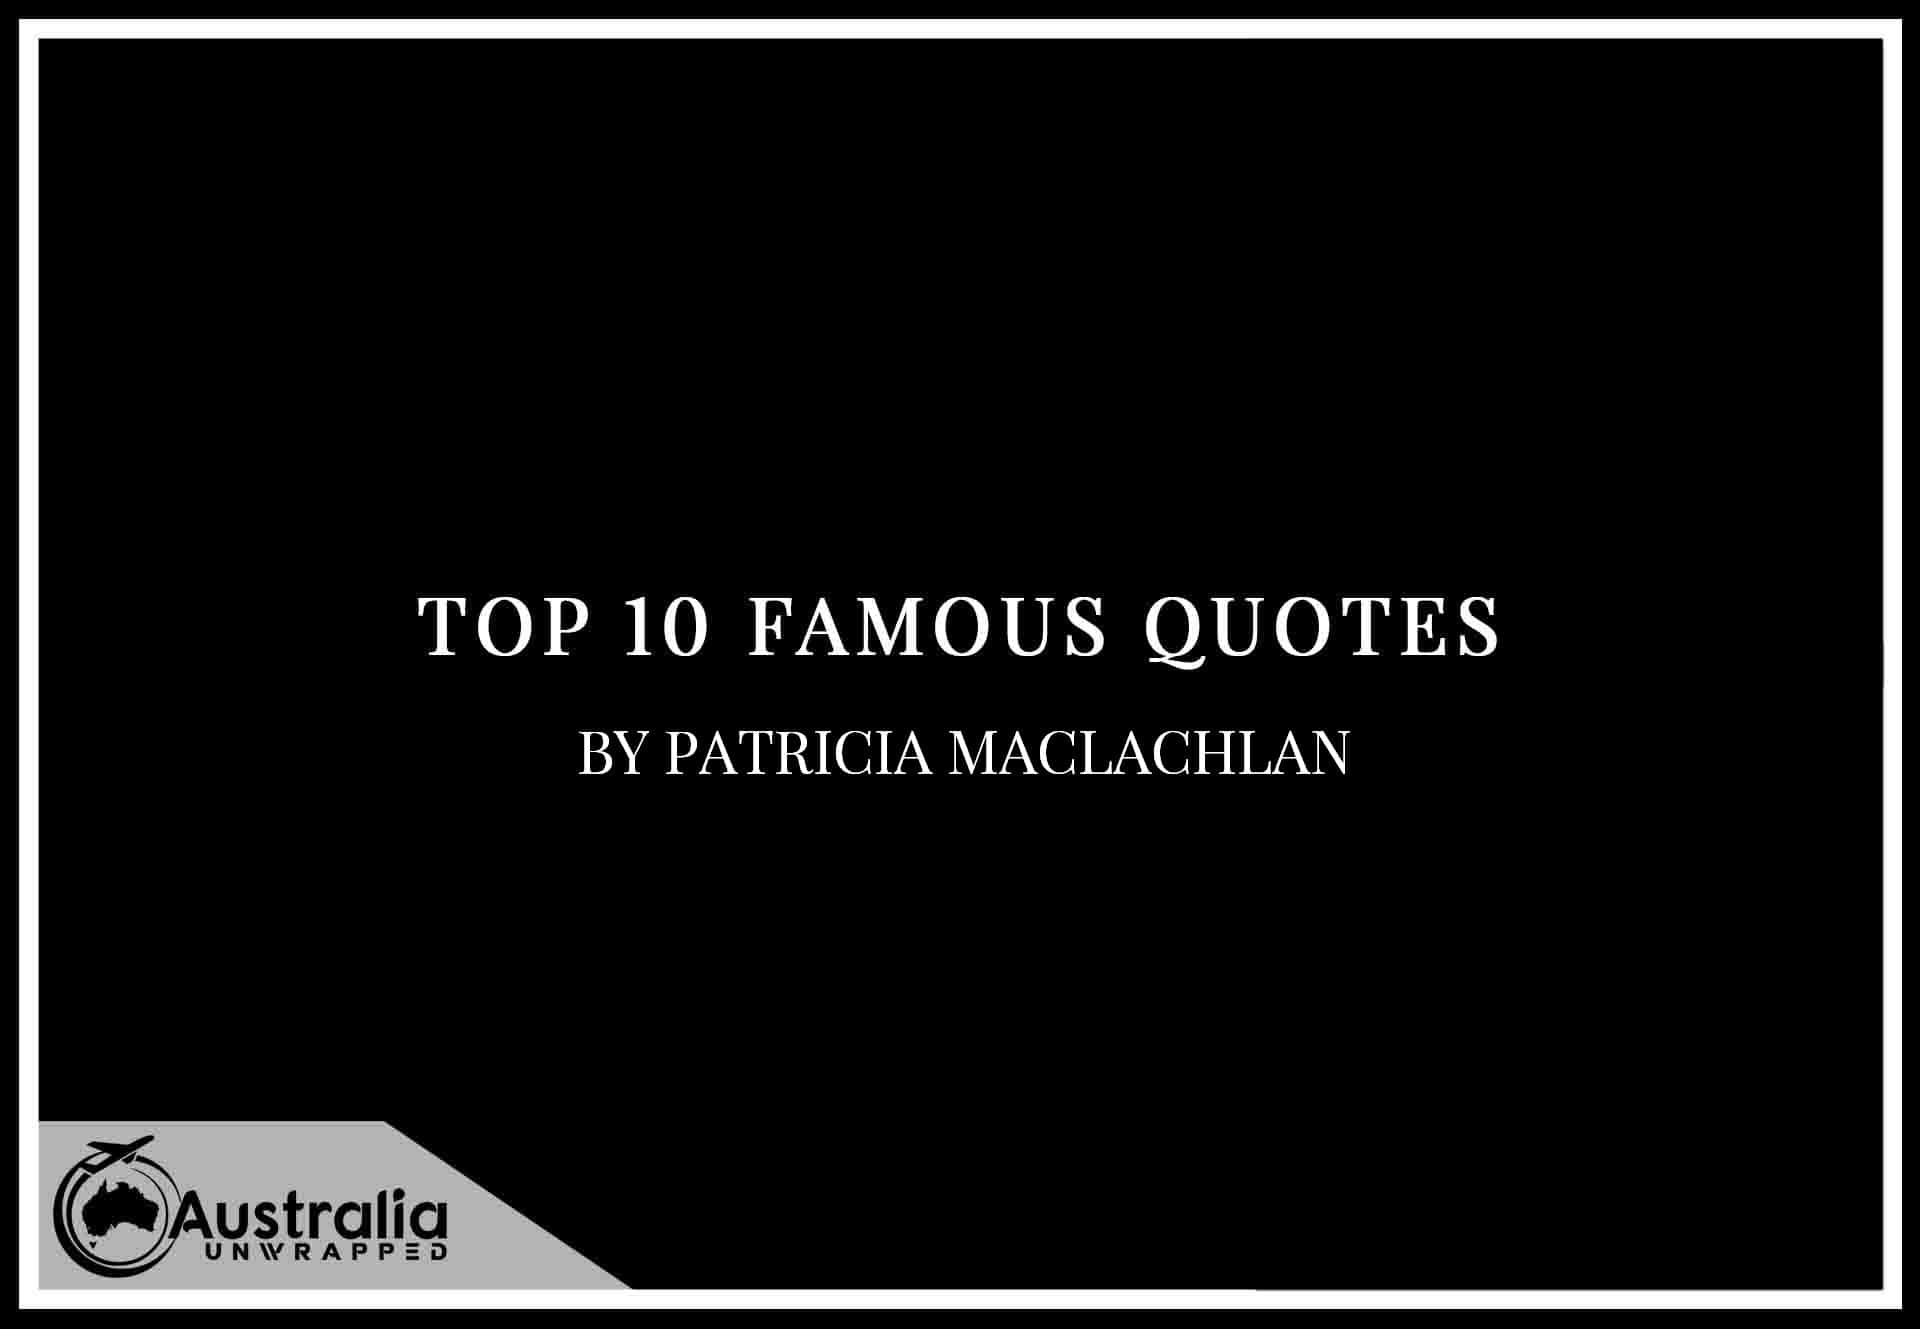 Top 10 Famous Quotes by Author Patricia MacLachlan